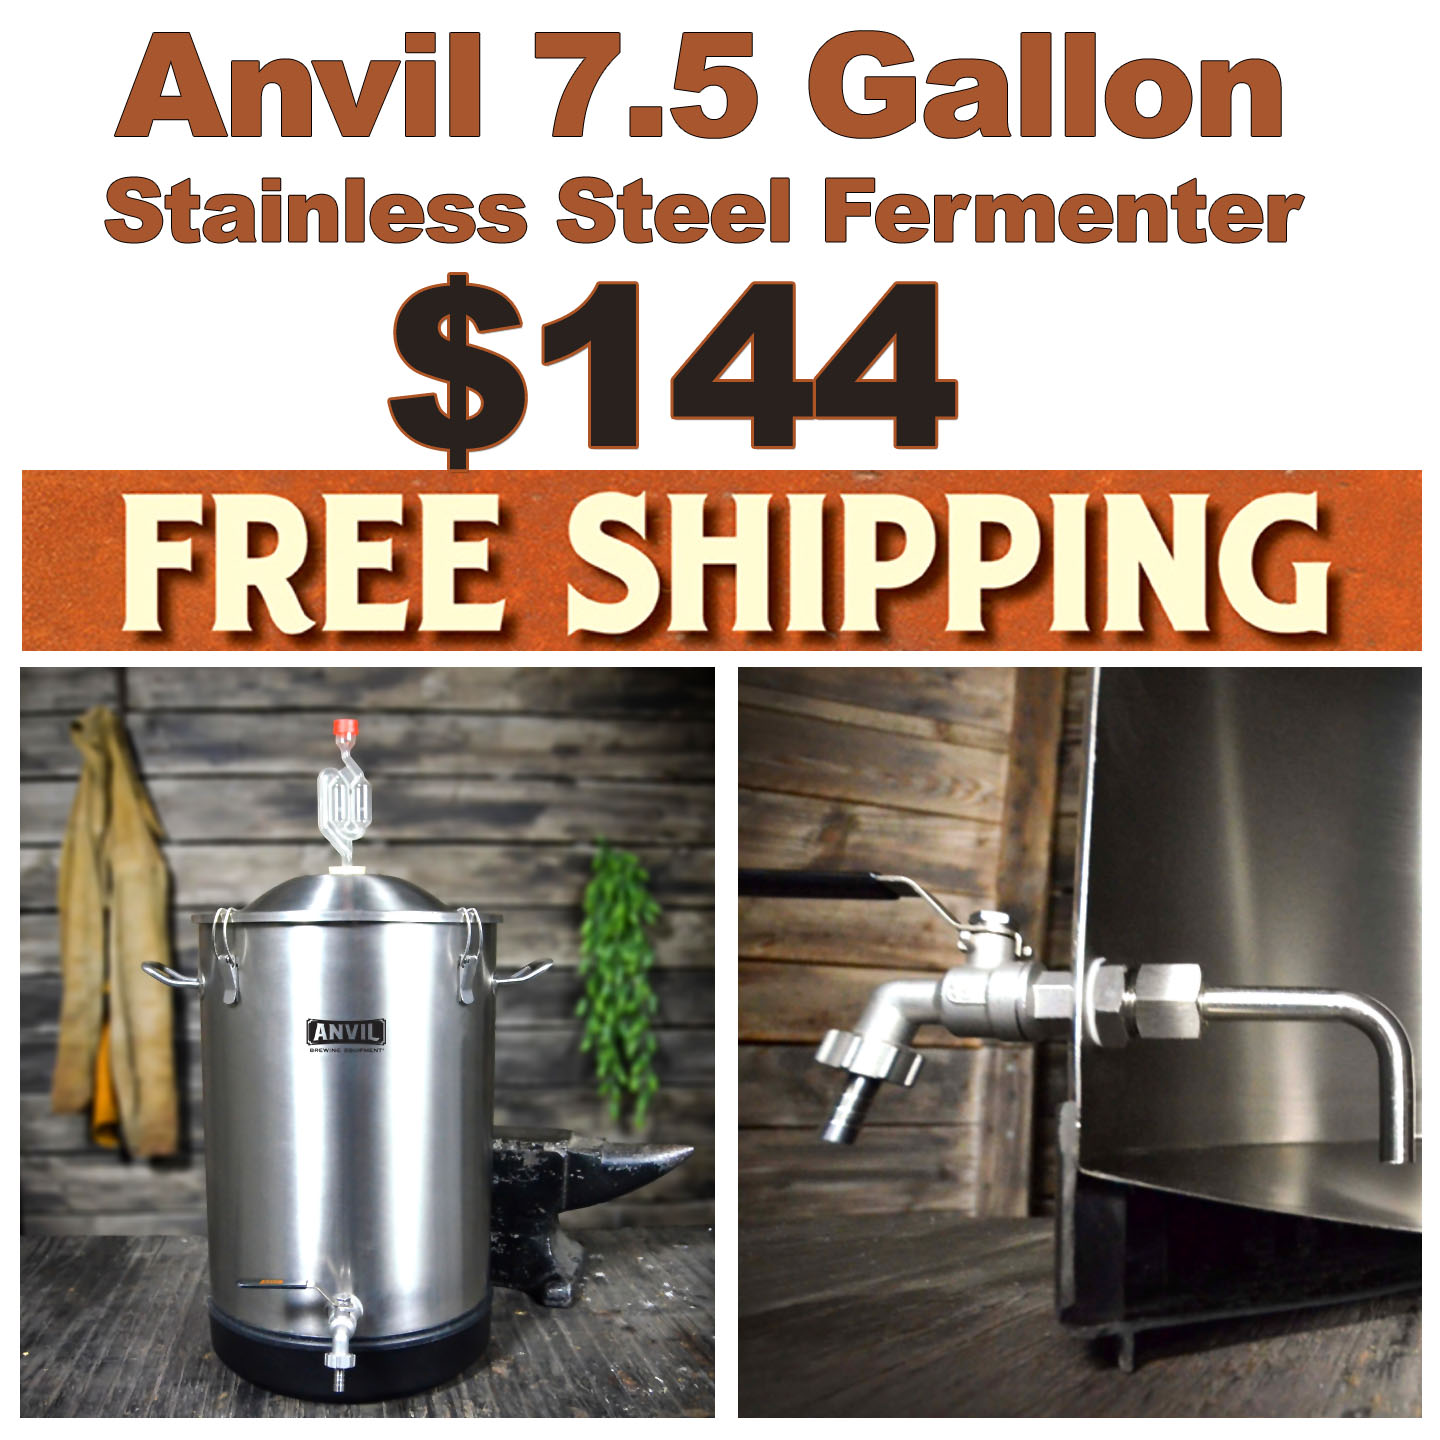 Home Brewing Promo Code Get an Anvil 7.5 Gallon Stainless Steel Fermenter for Just $144 Plus Free Shipping with this Anvil Promo Code Coupon Code